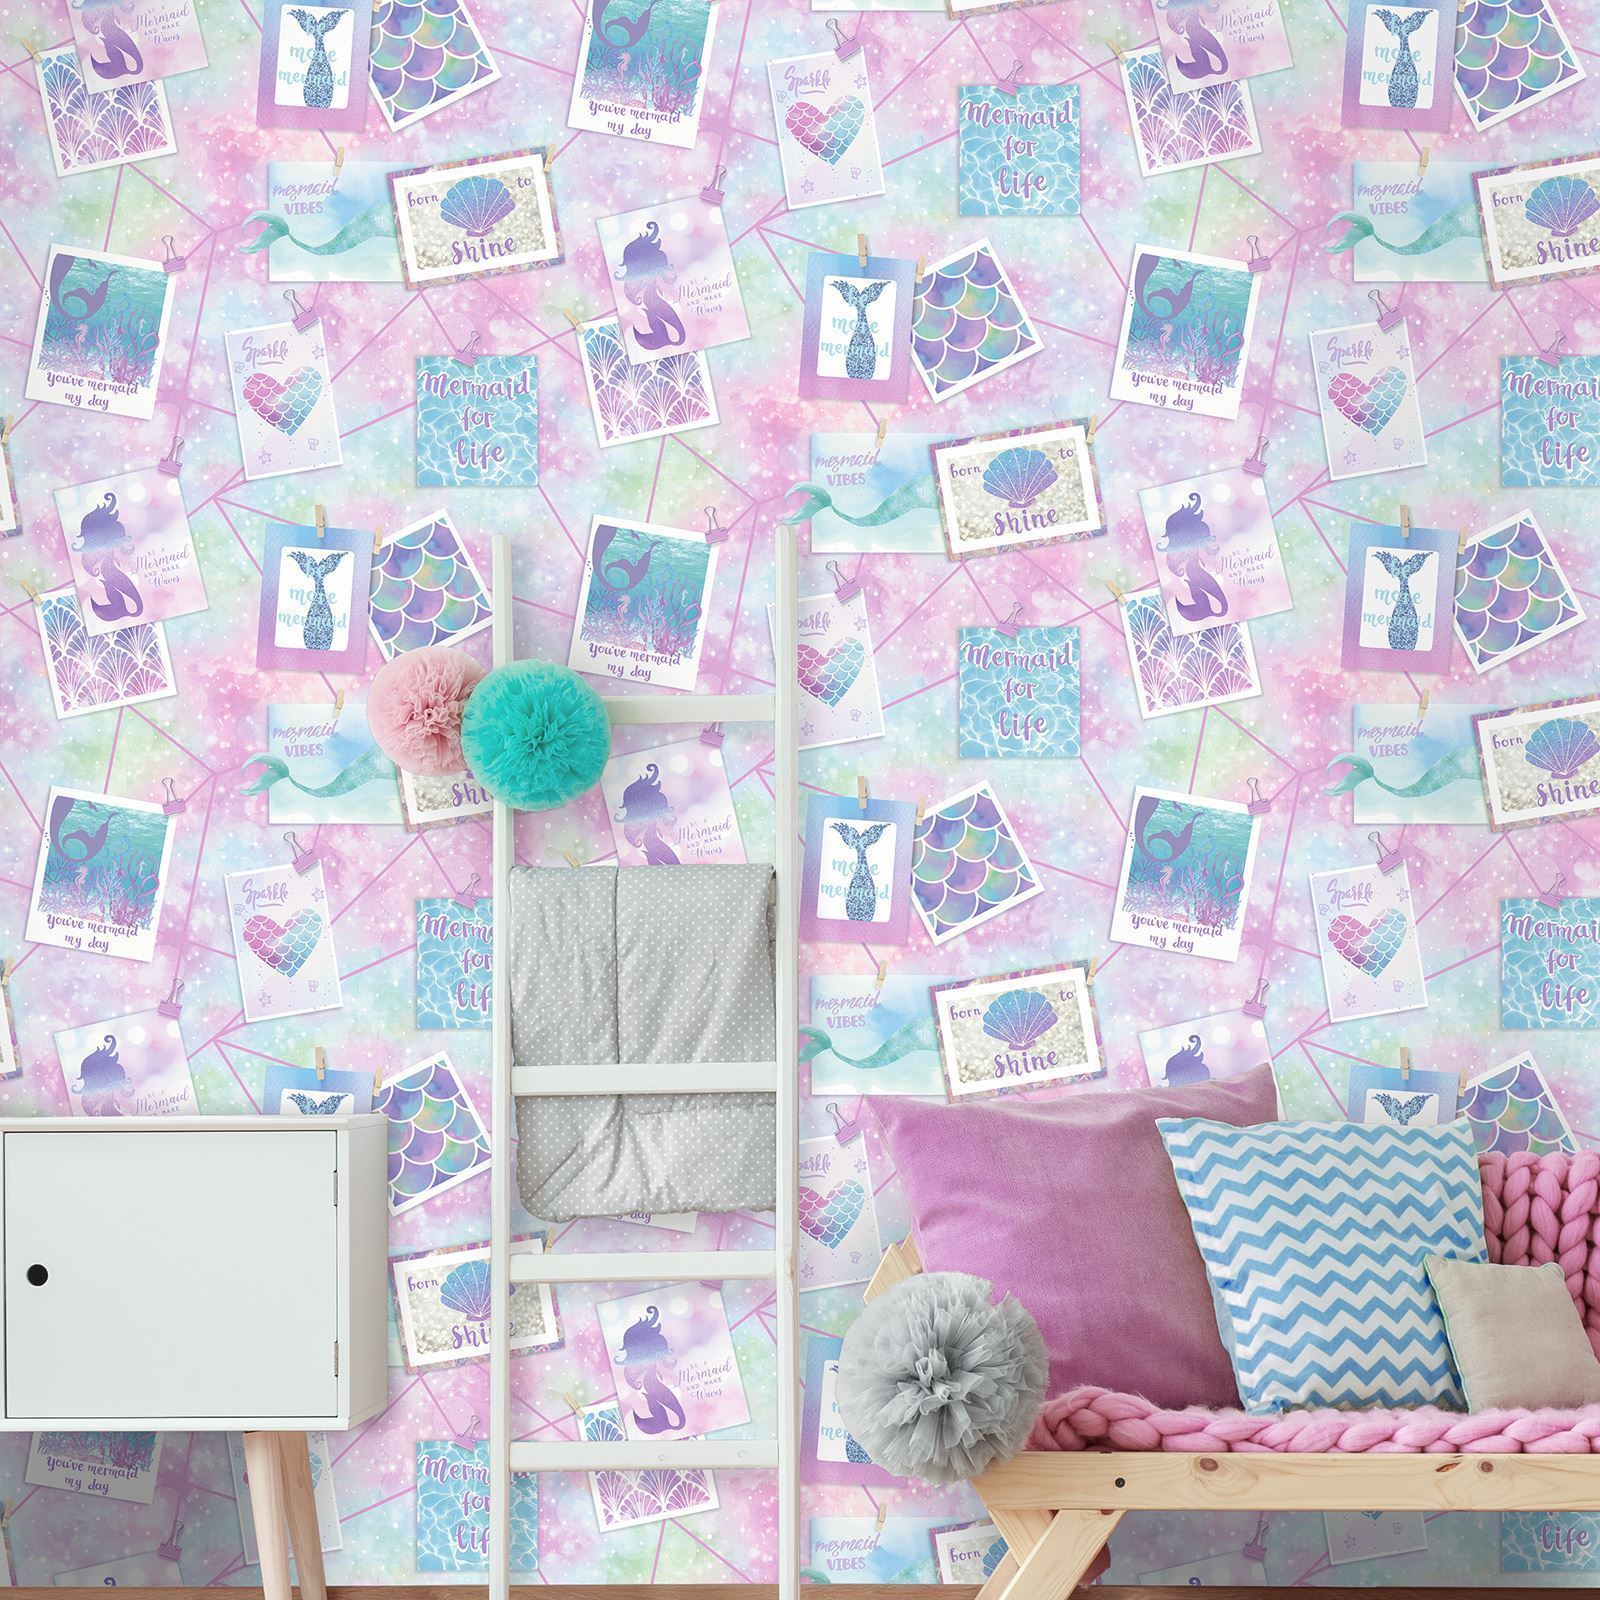 Be More Mermaid Wallpaper Collage Hearts Shells Scales Glitter Nautical Holden